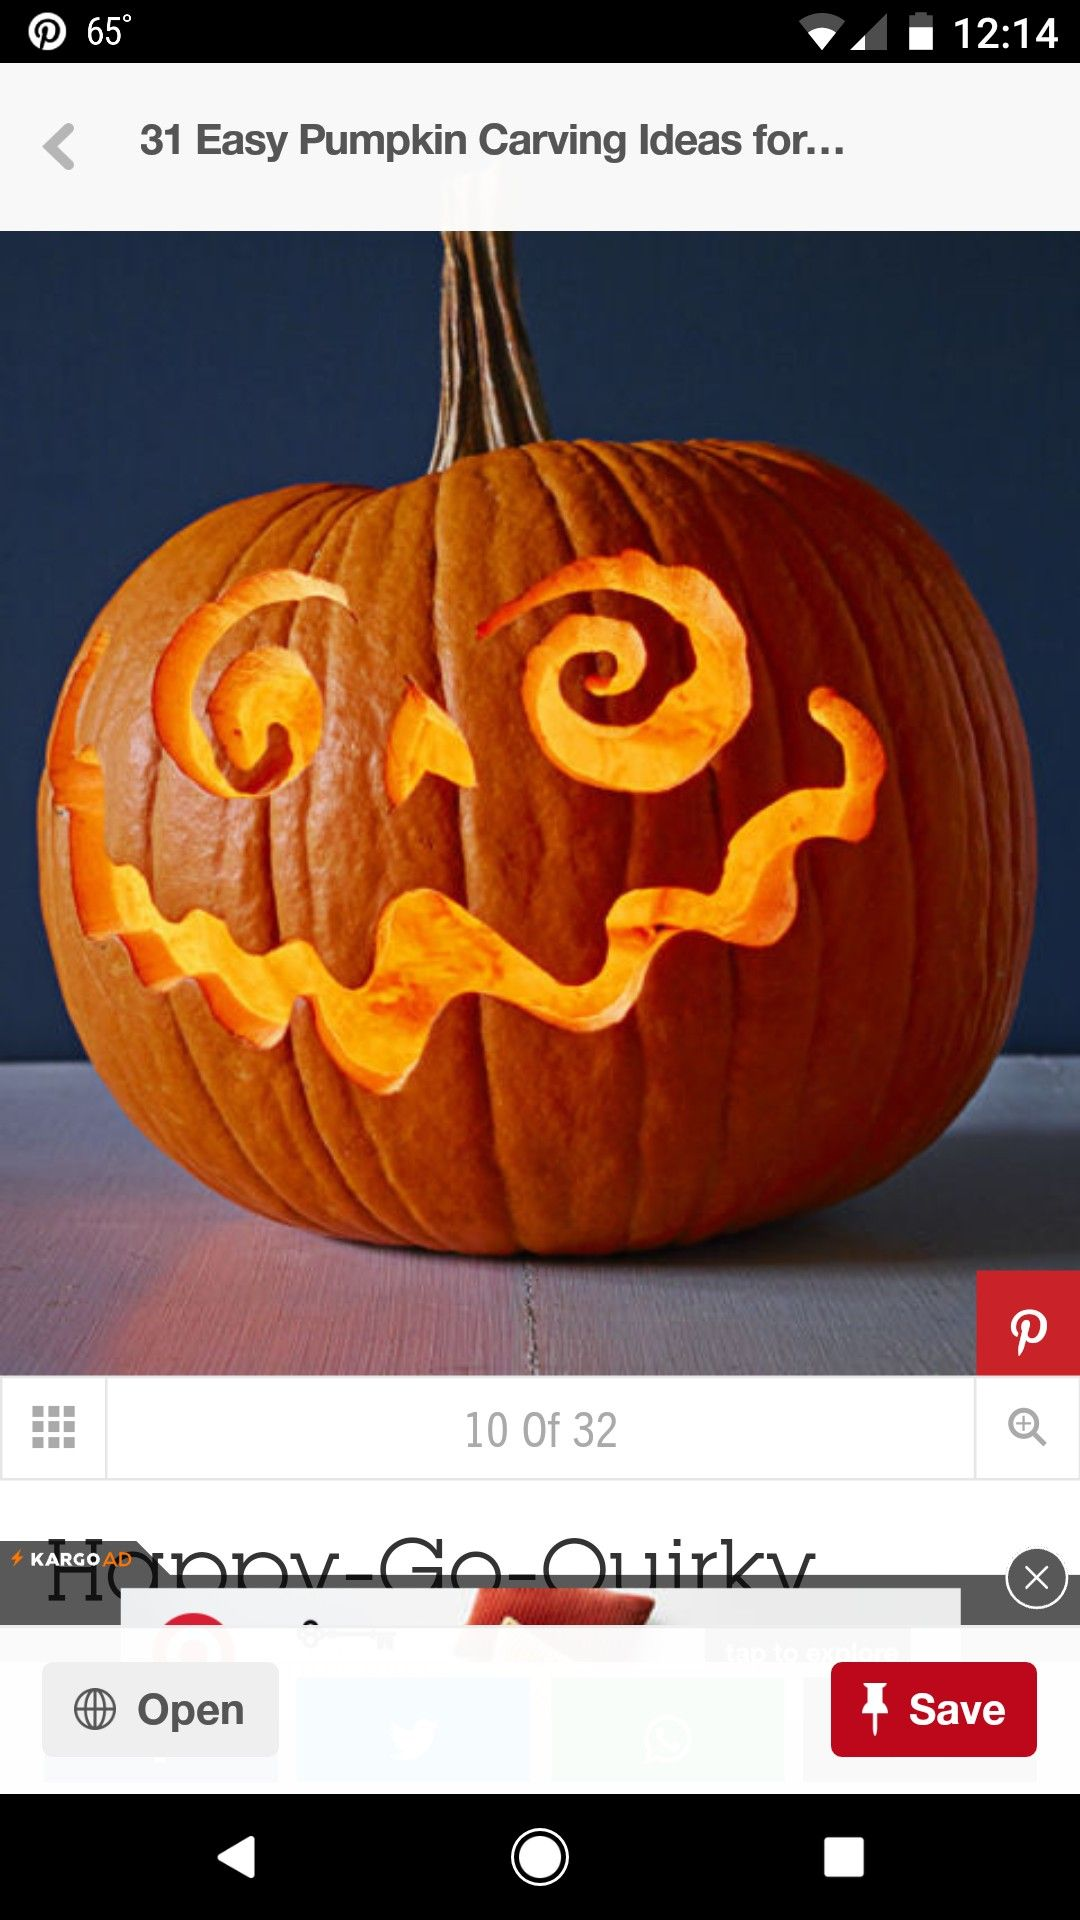 Pin by Kristy Moore on Pumpkin Carving Pumpkin carving